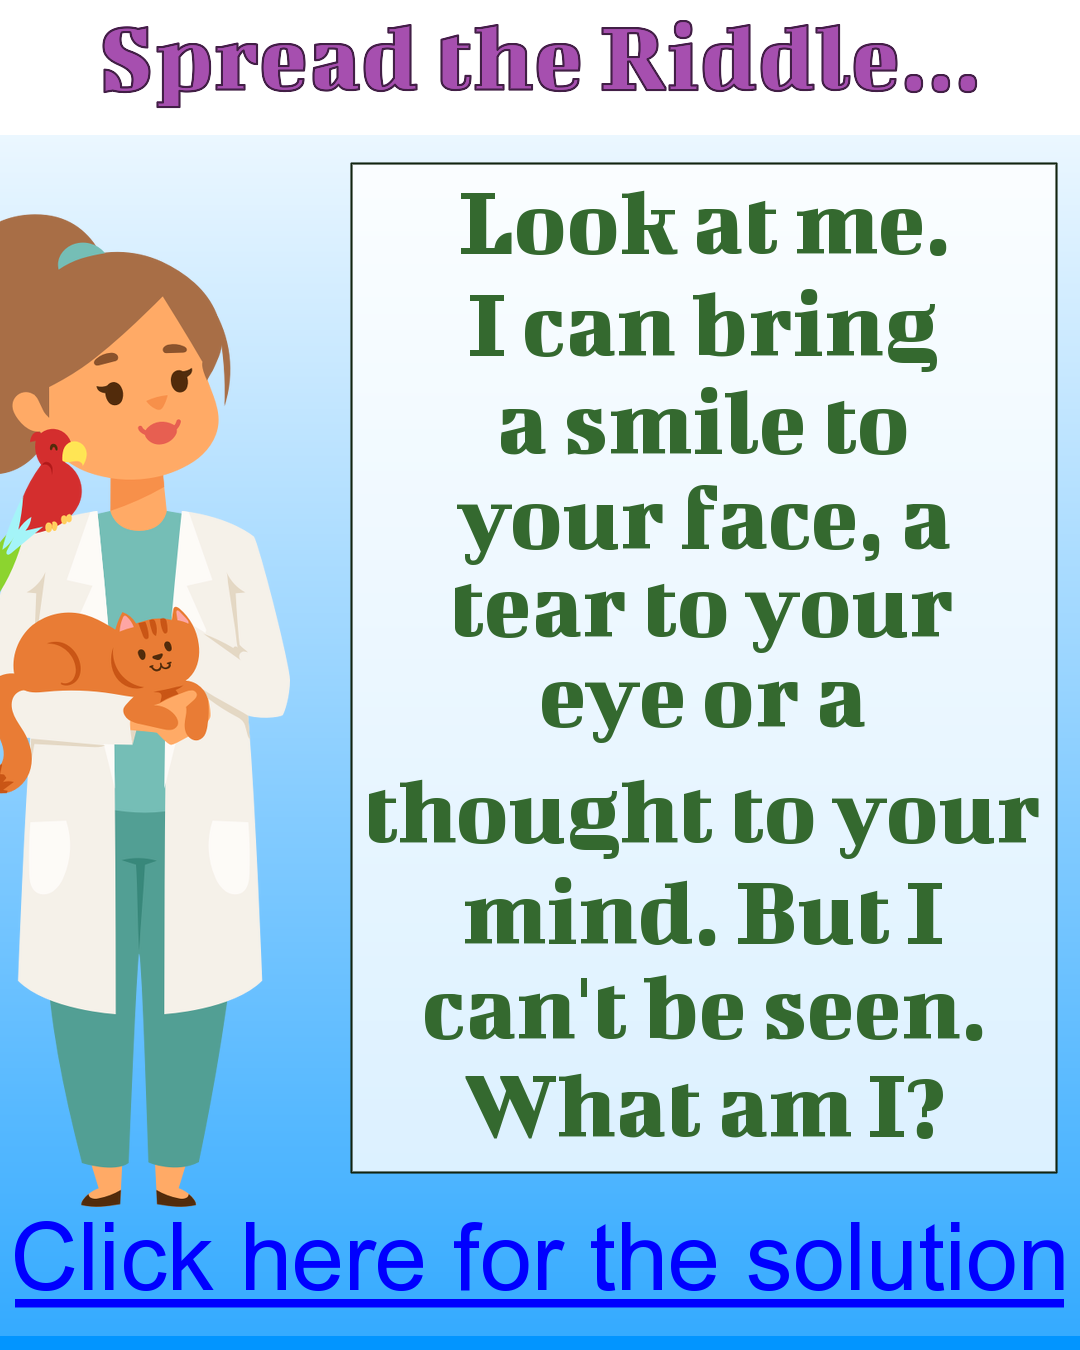 Bringing smiles and tears What am I? Up for the challenge